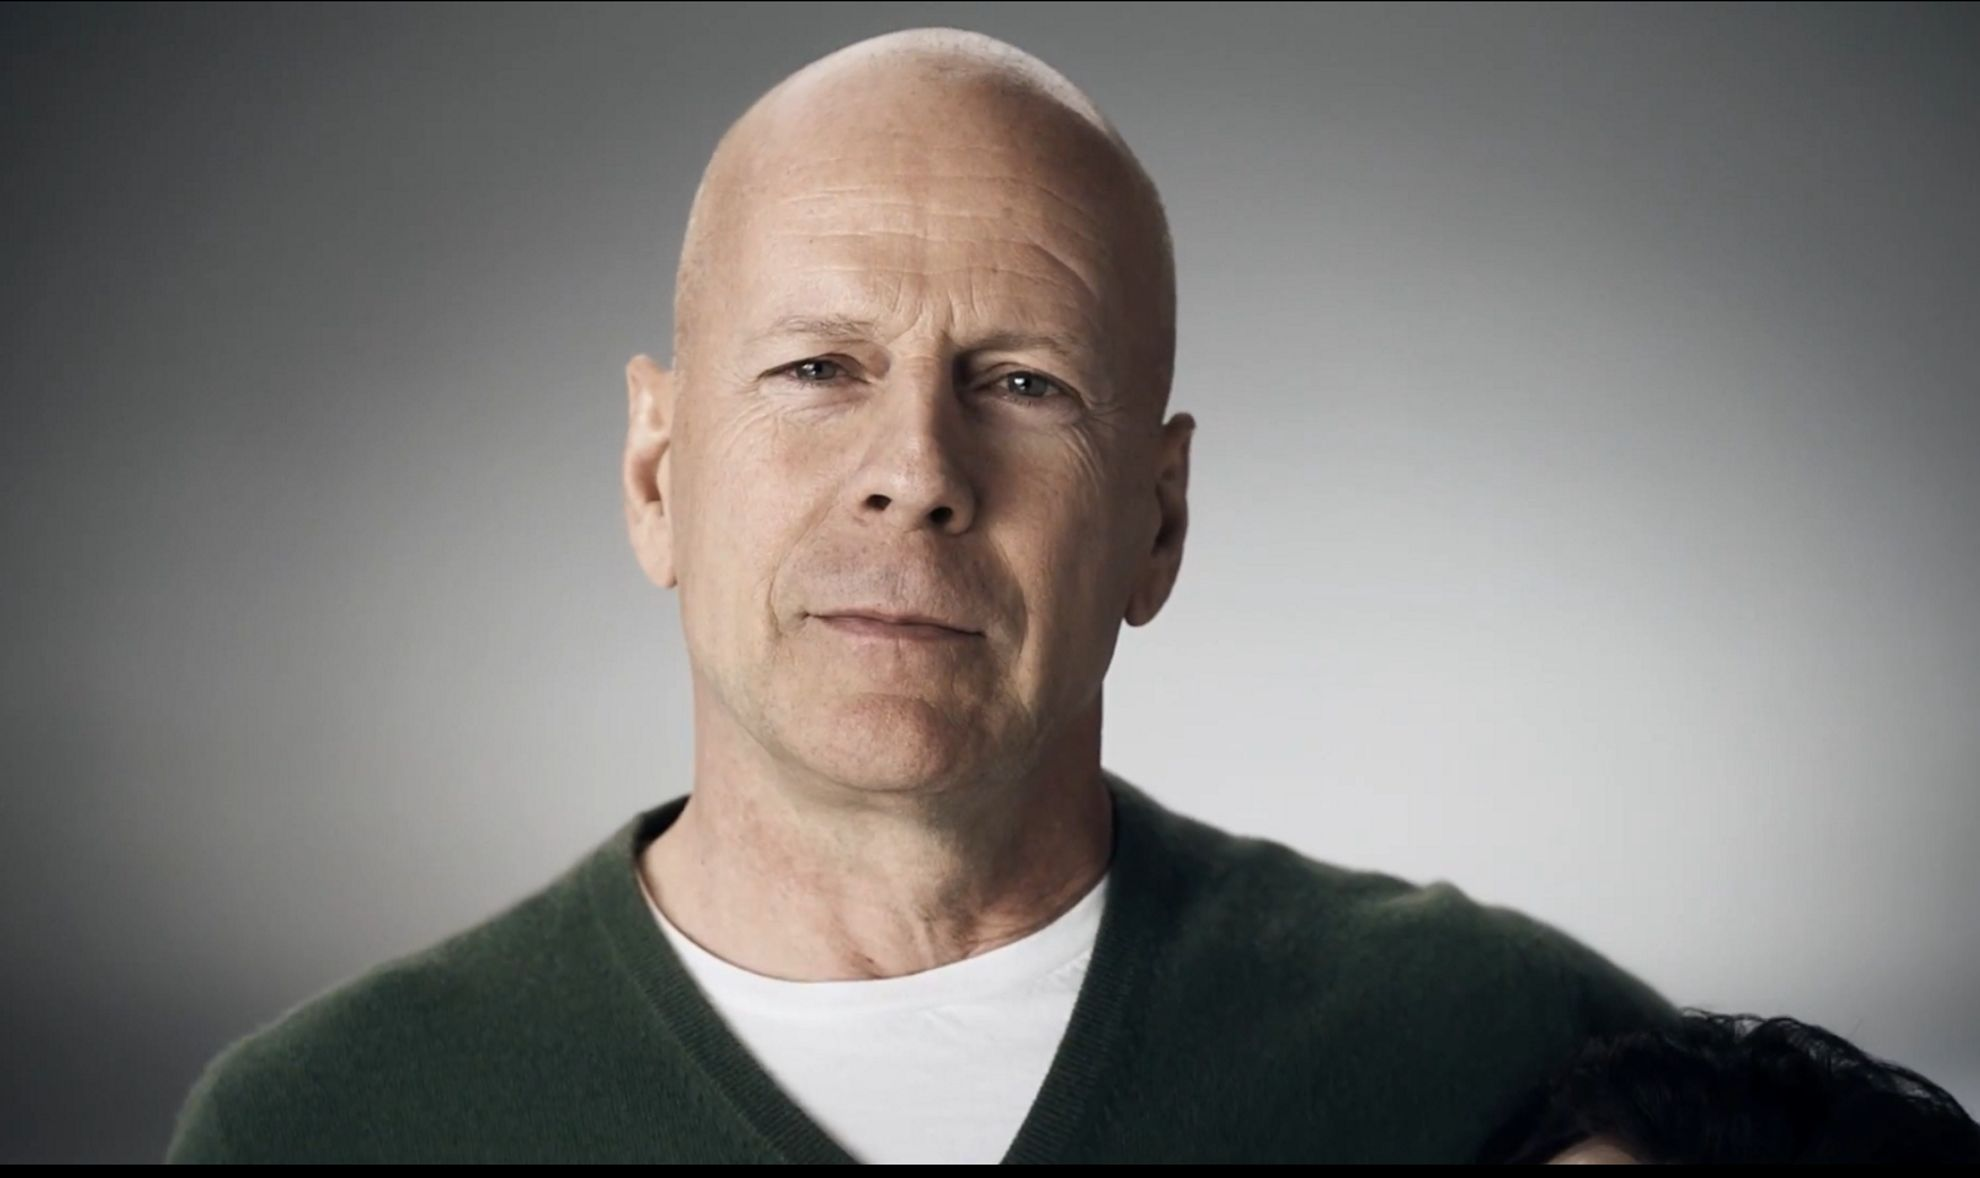 img BRUCE WILLIS, Actor